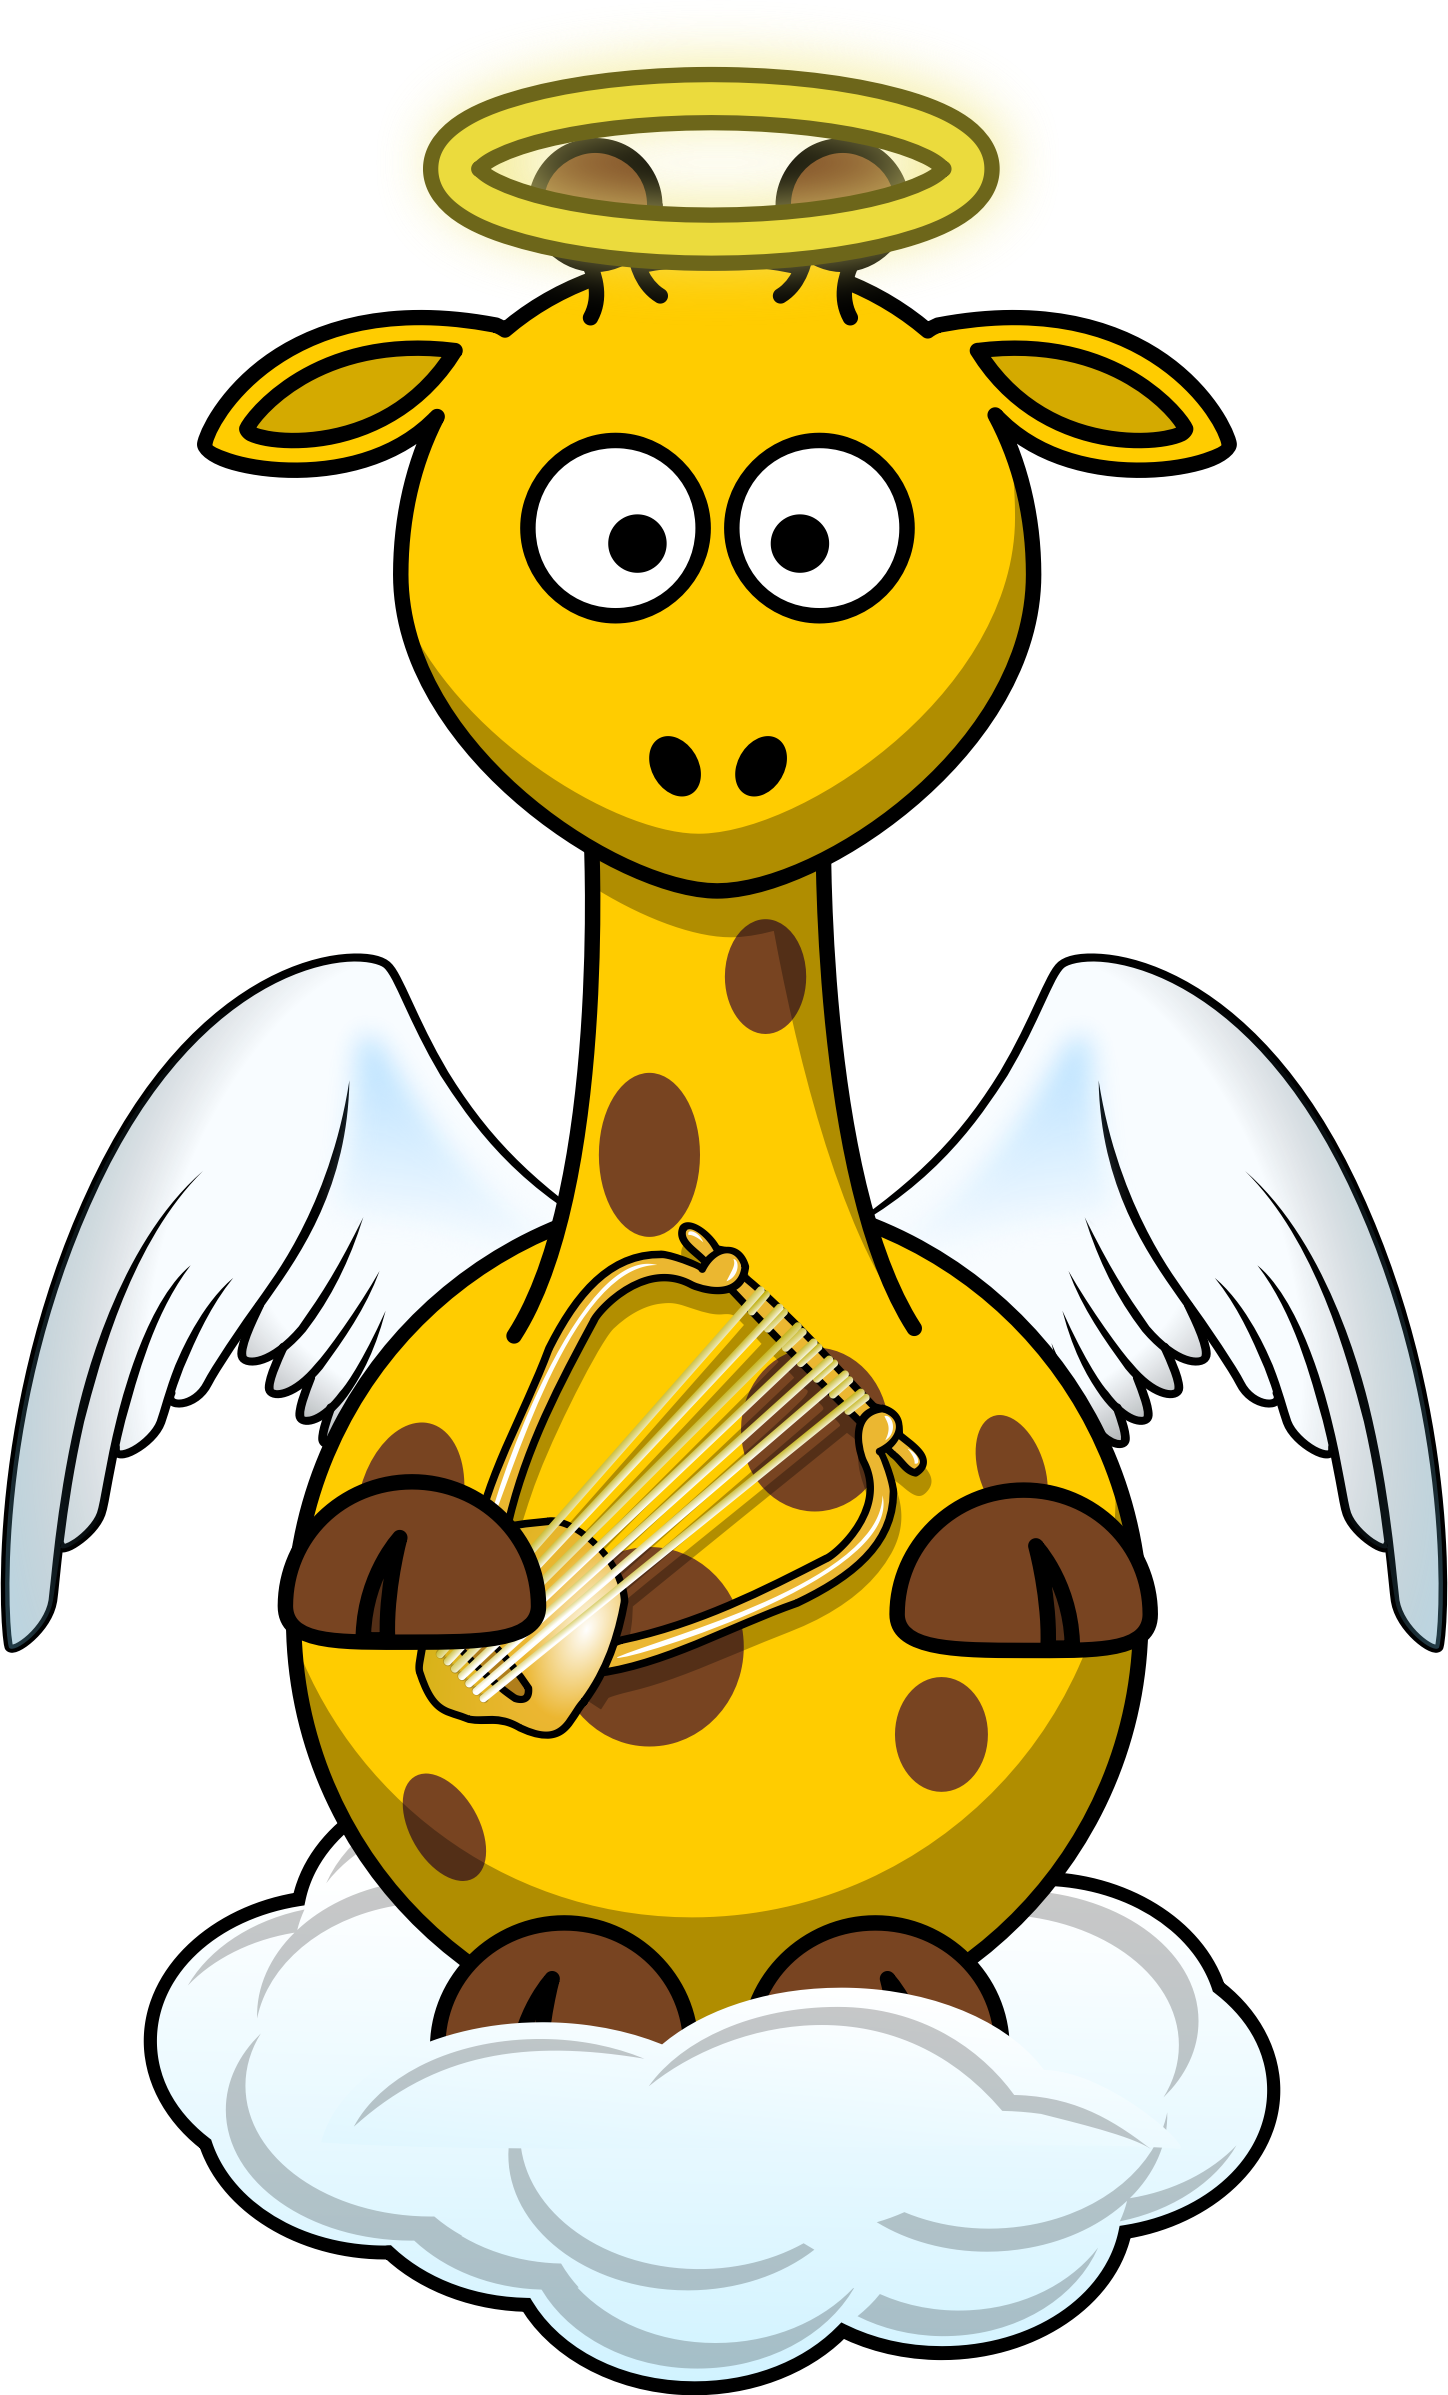 Giraffe angel by bingenberg. Marbles clipart animated